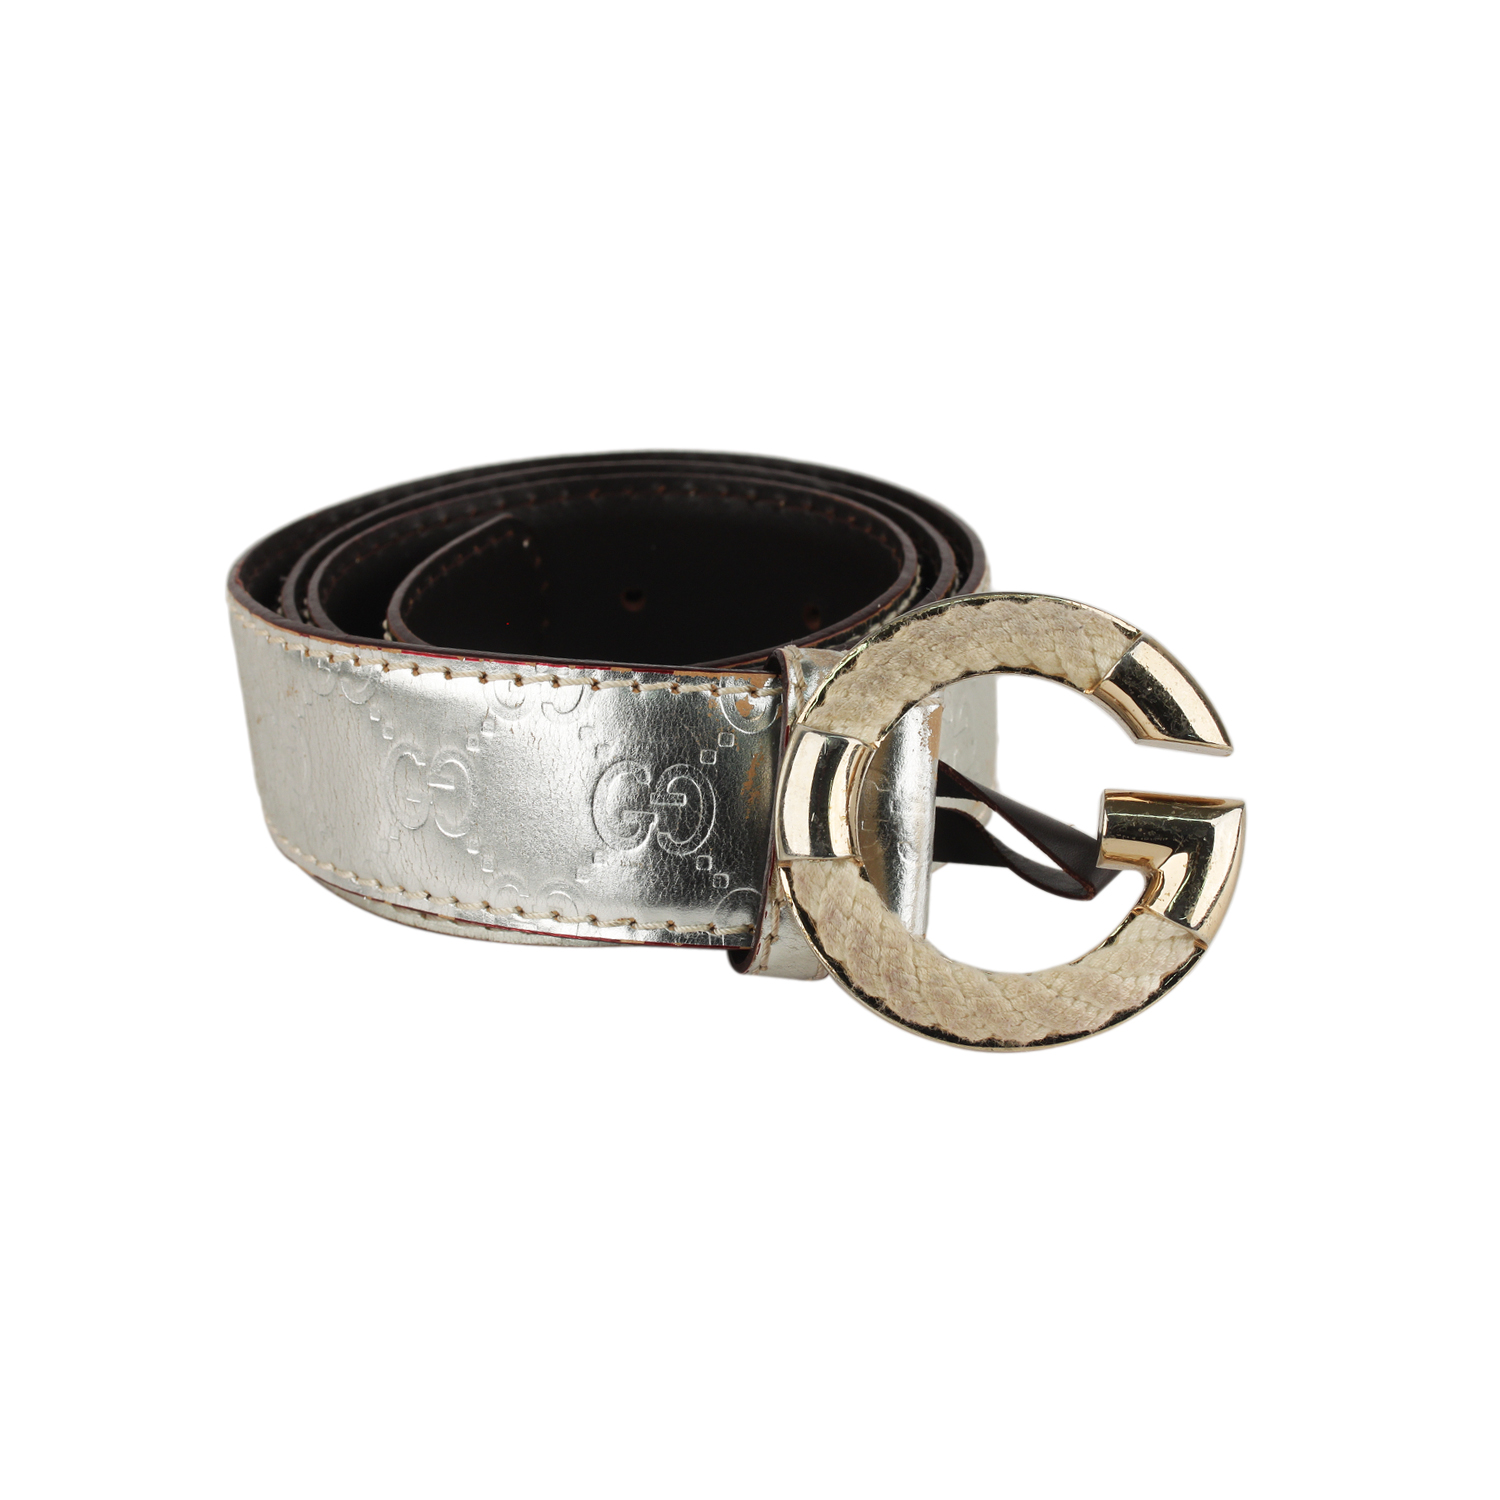 eda6b71f5 Gucci belt in silver-tone Guccissima lleather. G rope logo buckle. 1.5  inches - 3,8cm wide. Size: 85/34. 5 Holes adjustament.